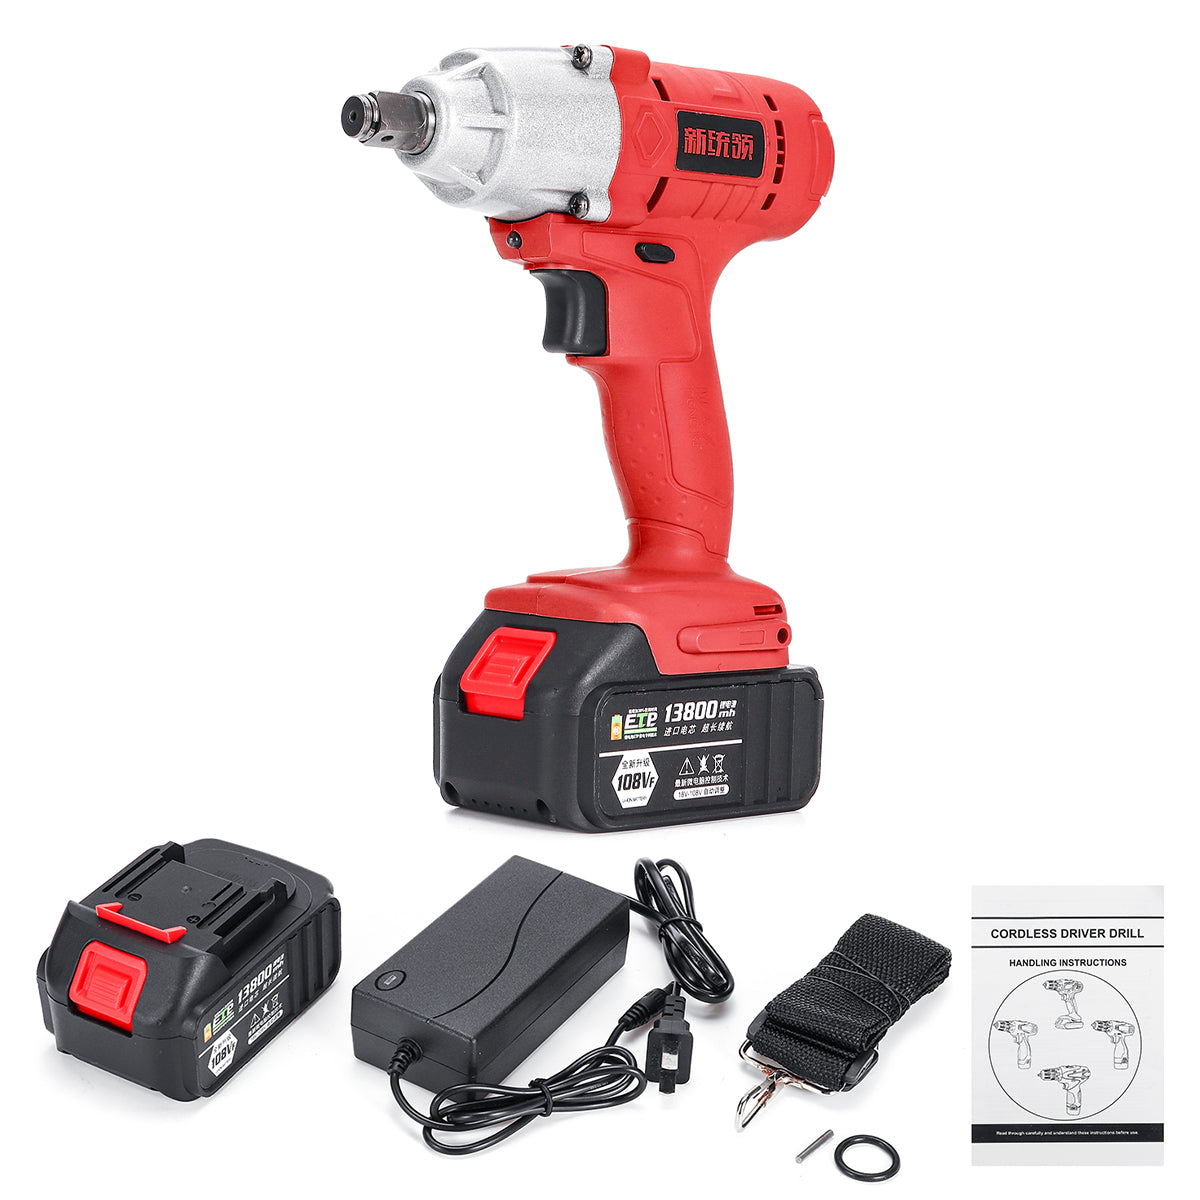 108VF 13800mAh 320NM Cordless High Torque Electric Wrench Driver